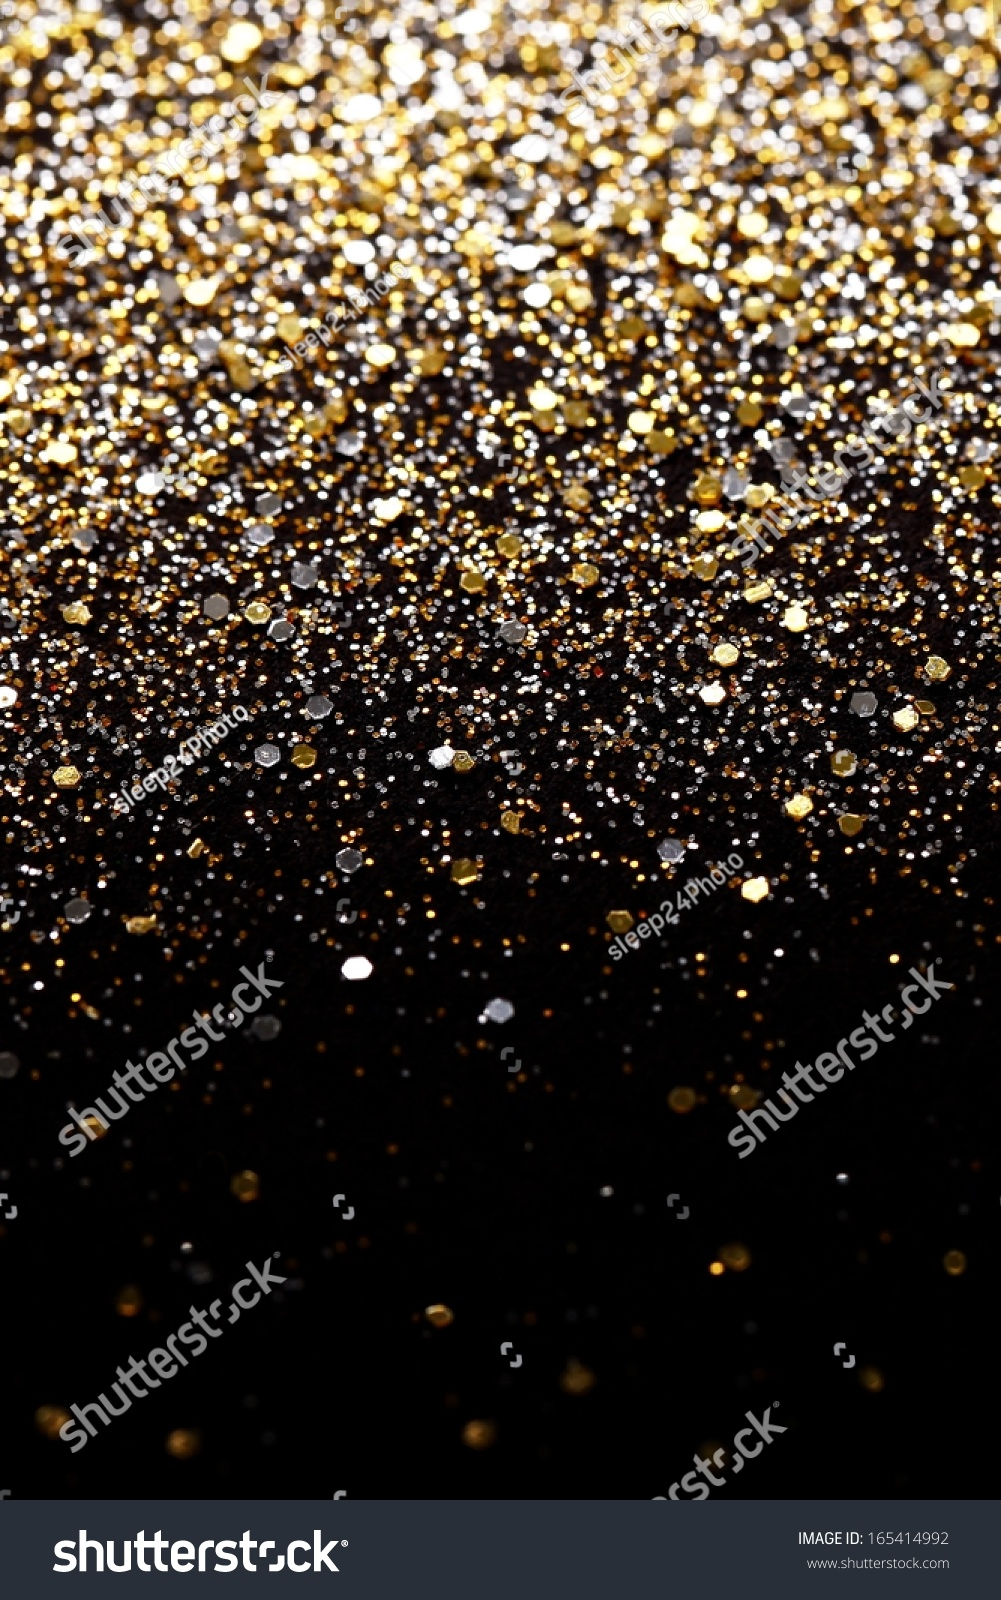 Falling Glitter Confetti Wallpapers Christmas Gold Silver Glitter Background Holiday Stock